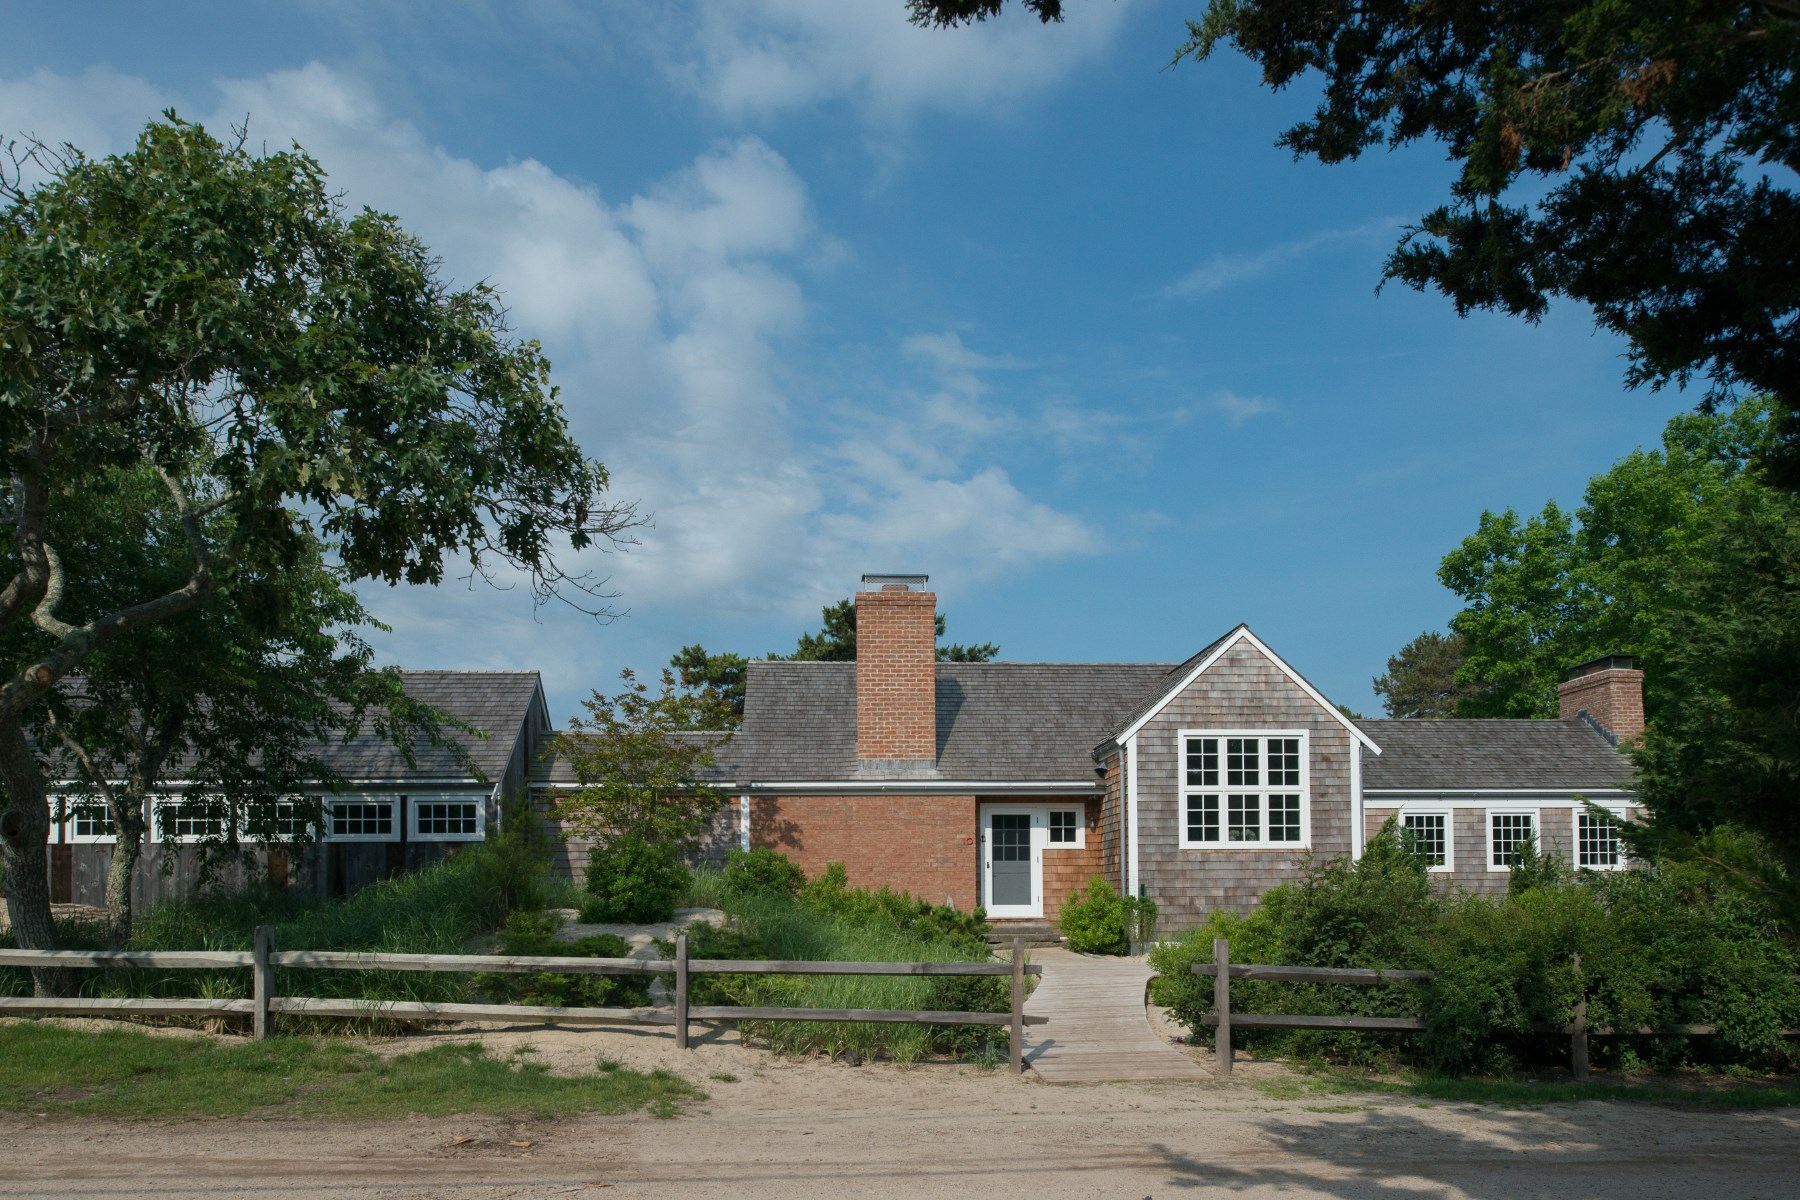 Single Family Home for Rent at Beautiful Amagansett Dunes House 10 Hampton Lane Amagansett, New York 11930 United States